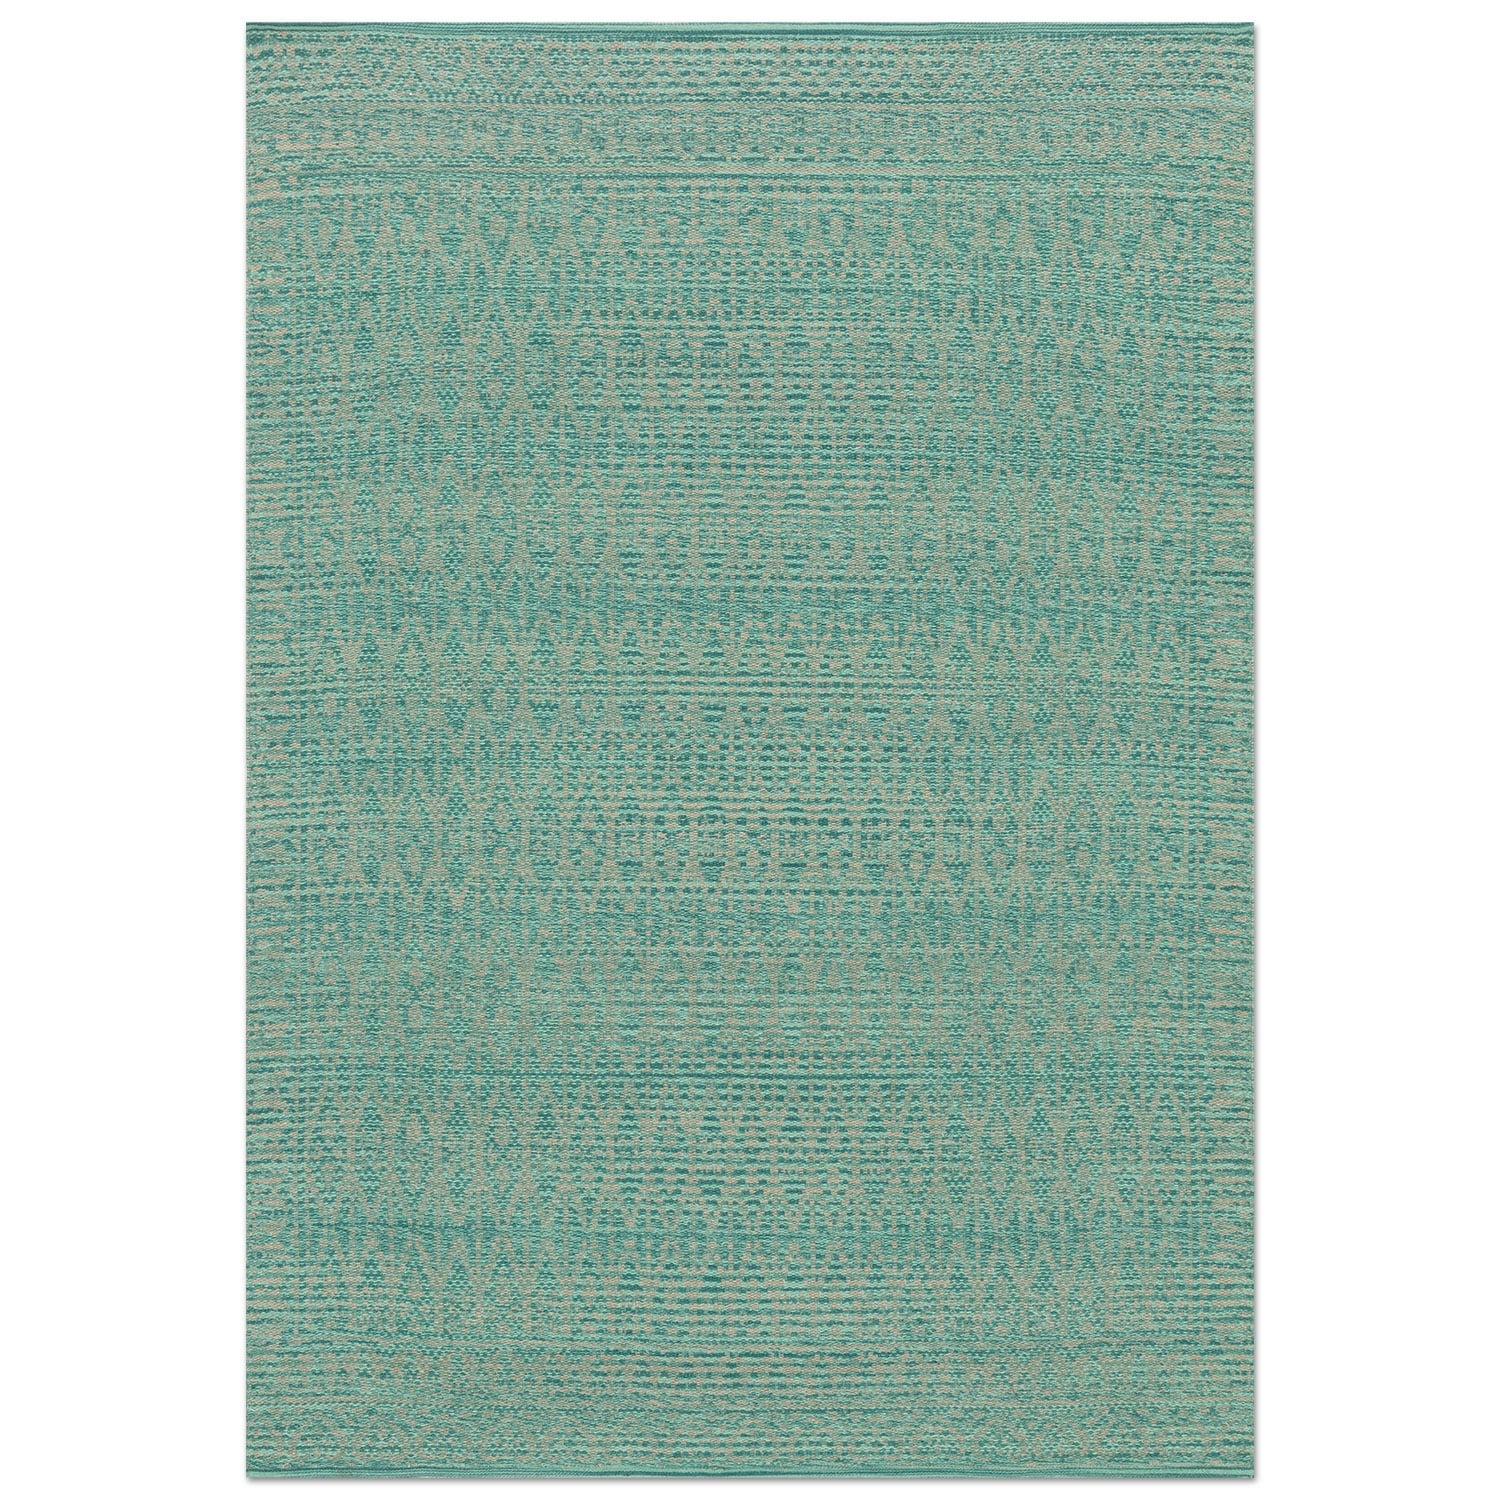 Accent and Occasional Furniture - Emmie Kay 8' x 10' Rug - Turquoise and Dove